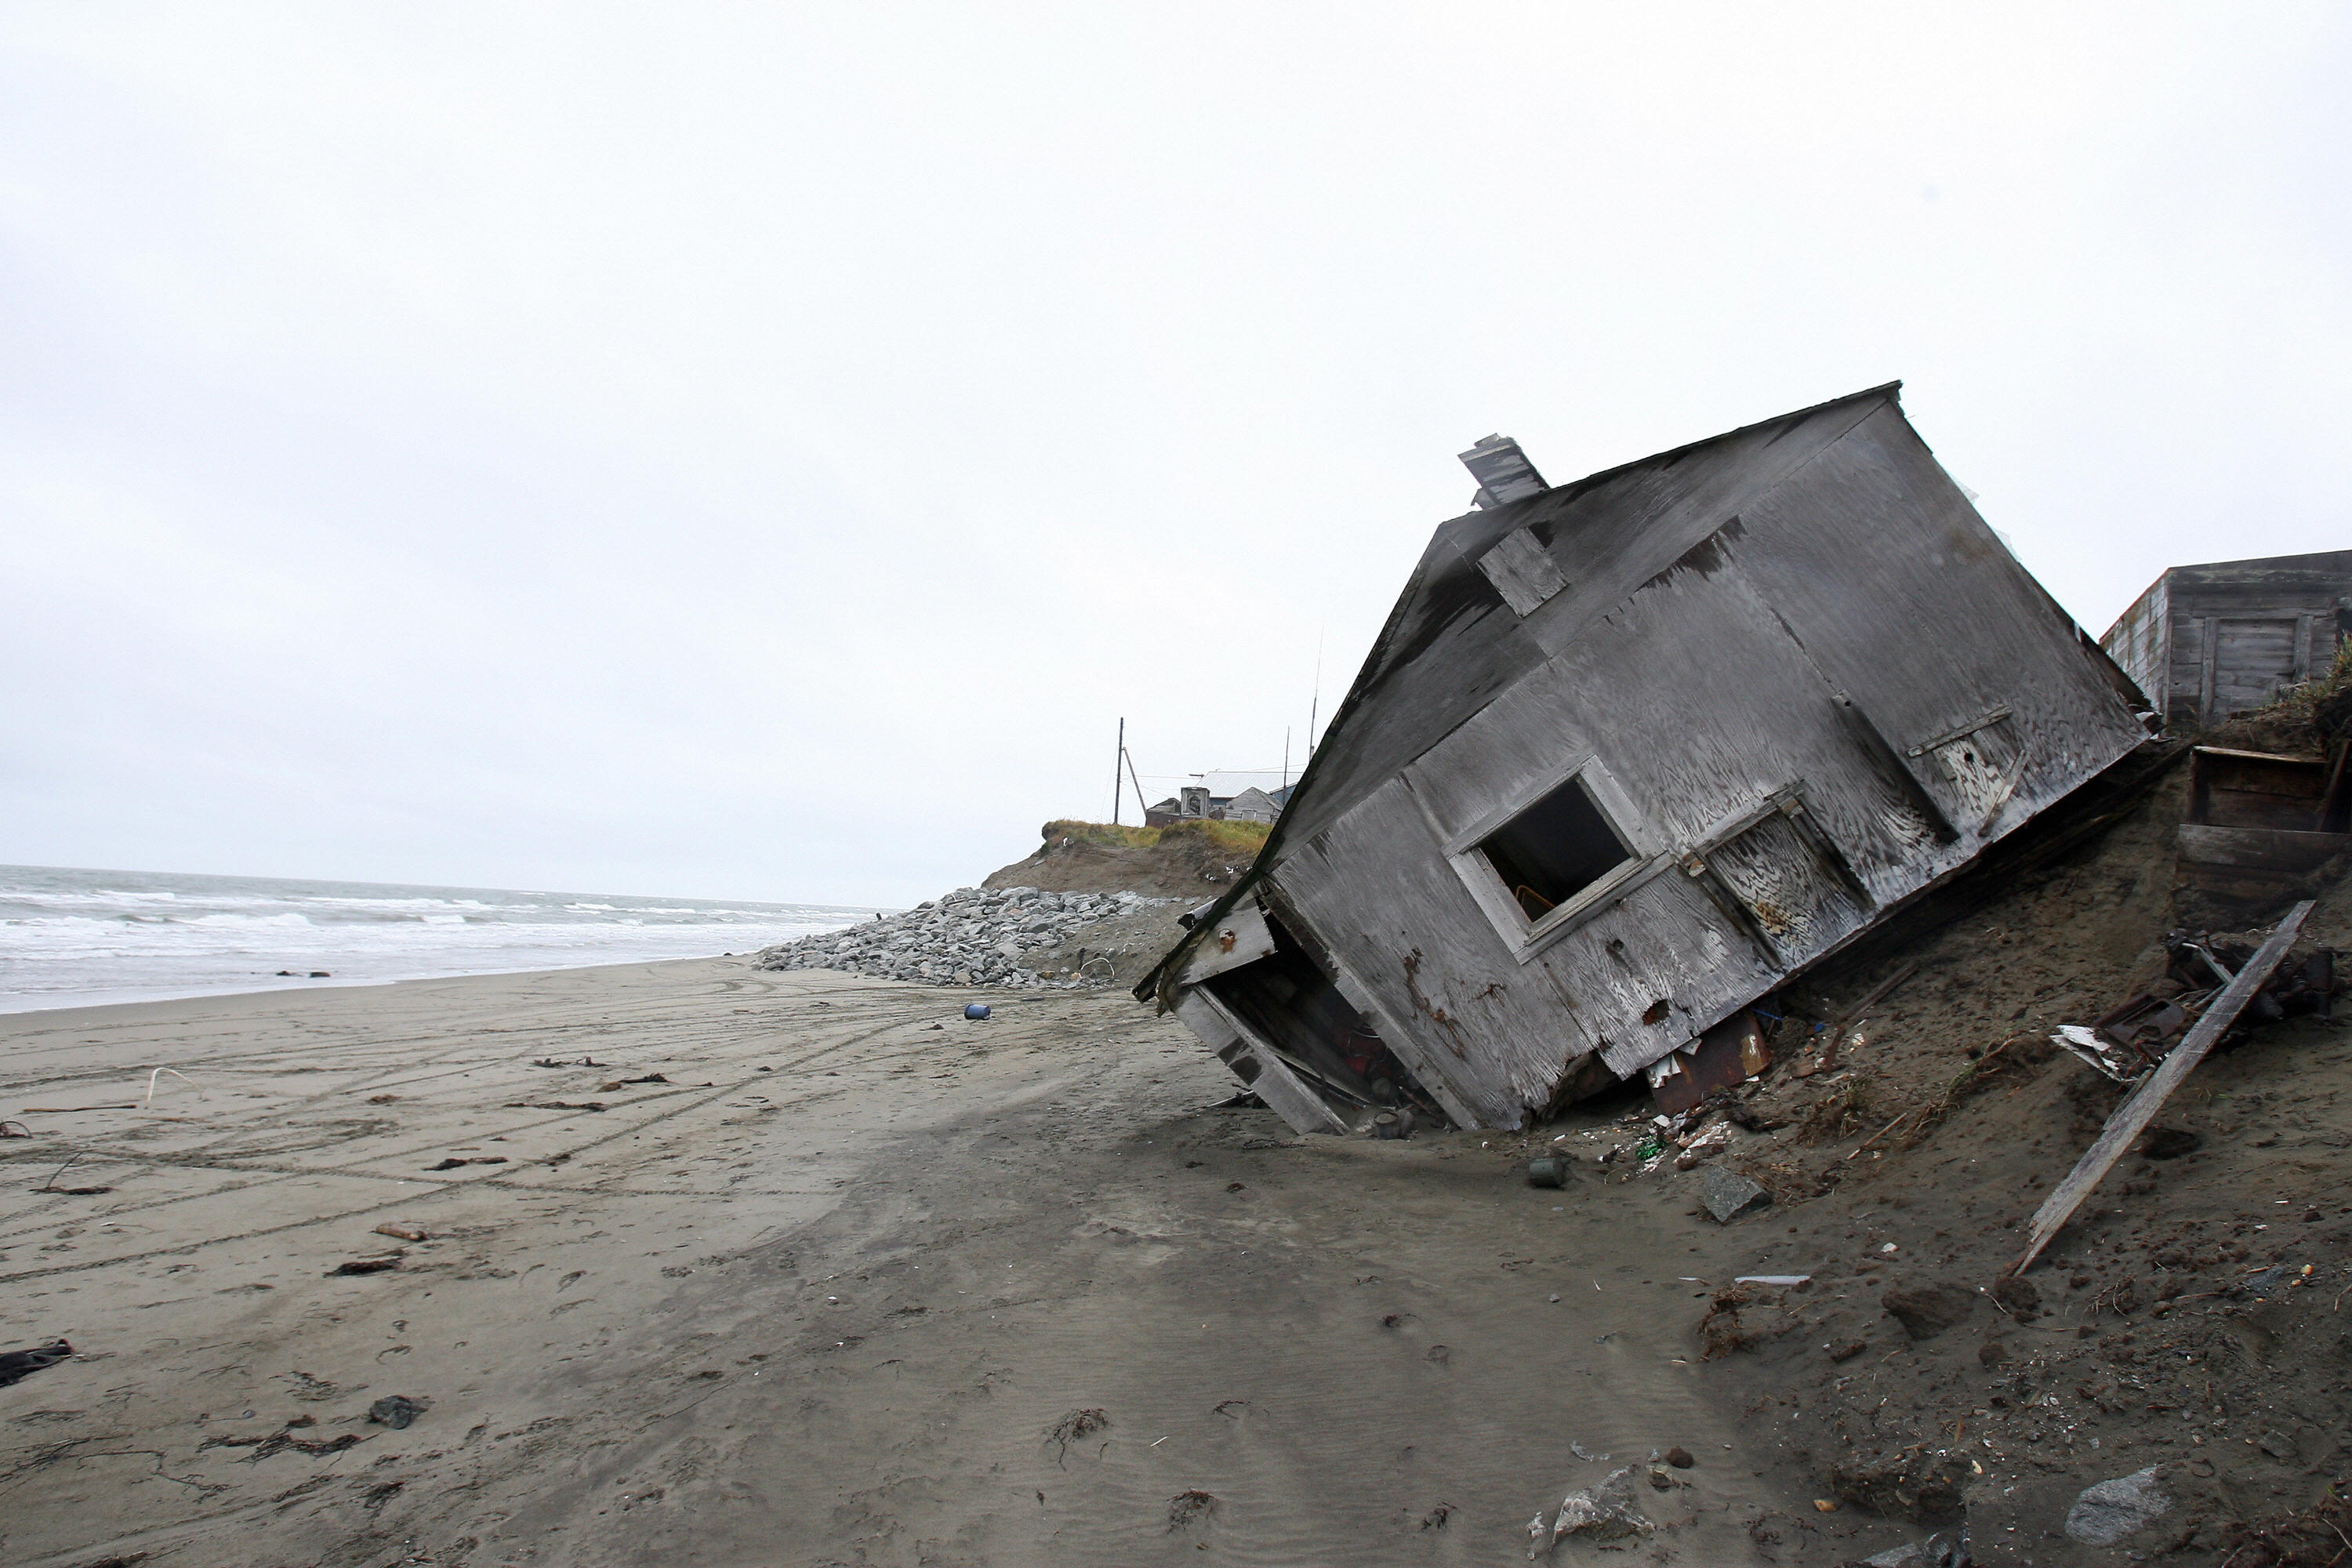 A home in Shishmaref, Alaska in 2006. Temperatures that have risen 15F (4.4C) over the last 30 years are causing a reduction in sea ice, thawing of permafrost along the coast, making the shoreline vulnerable to erosion.  (Gabriel Bouys/AFP/Getty Images)